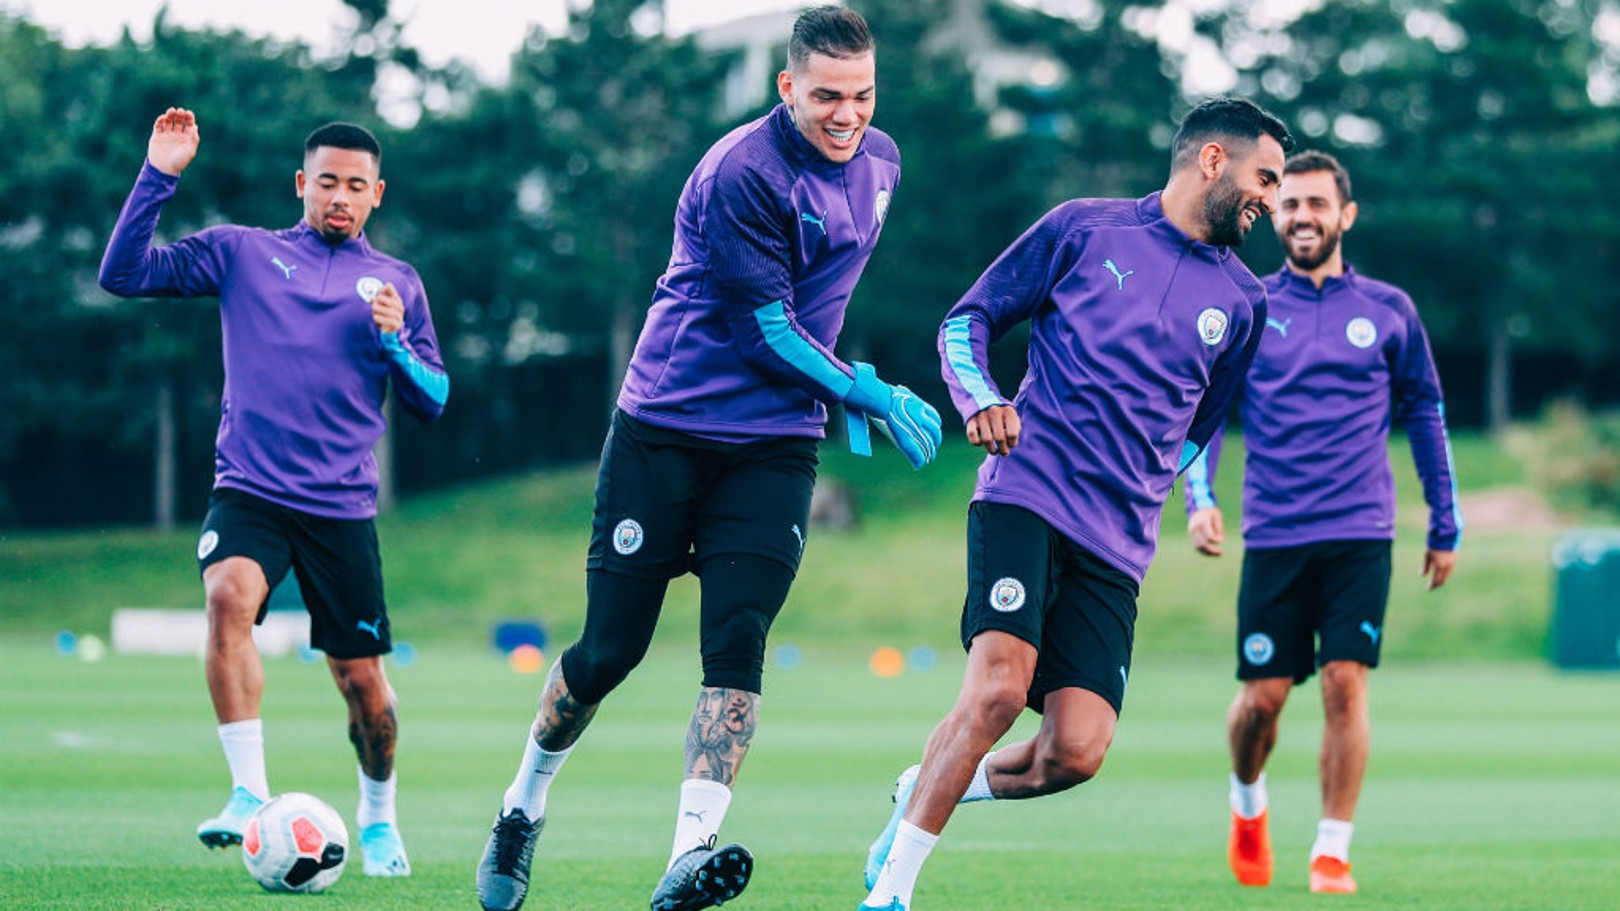 QUICK GET AWAY: The chase is on between Ederson and Riyad Mahrez!